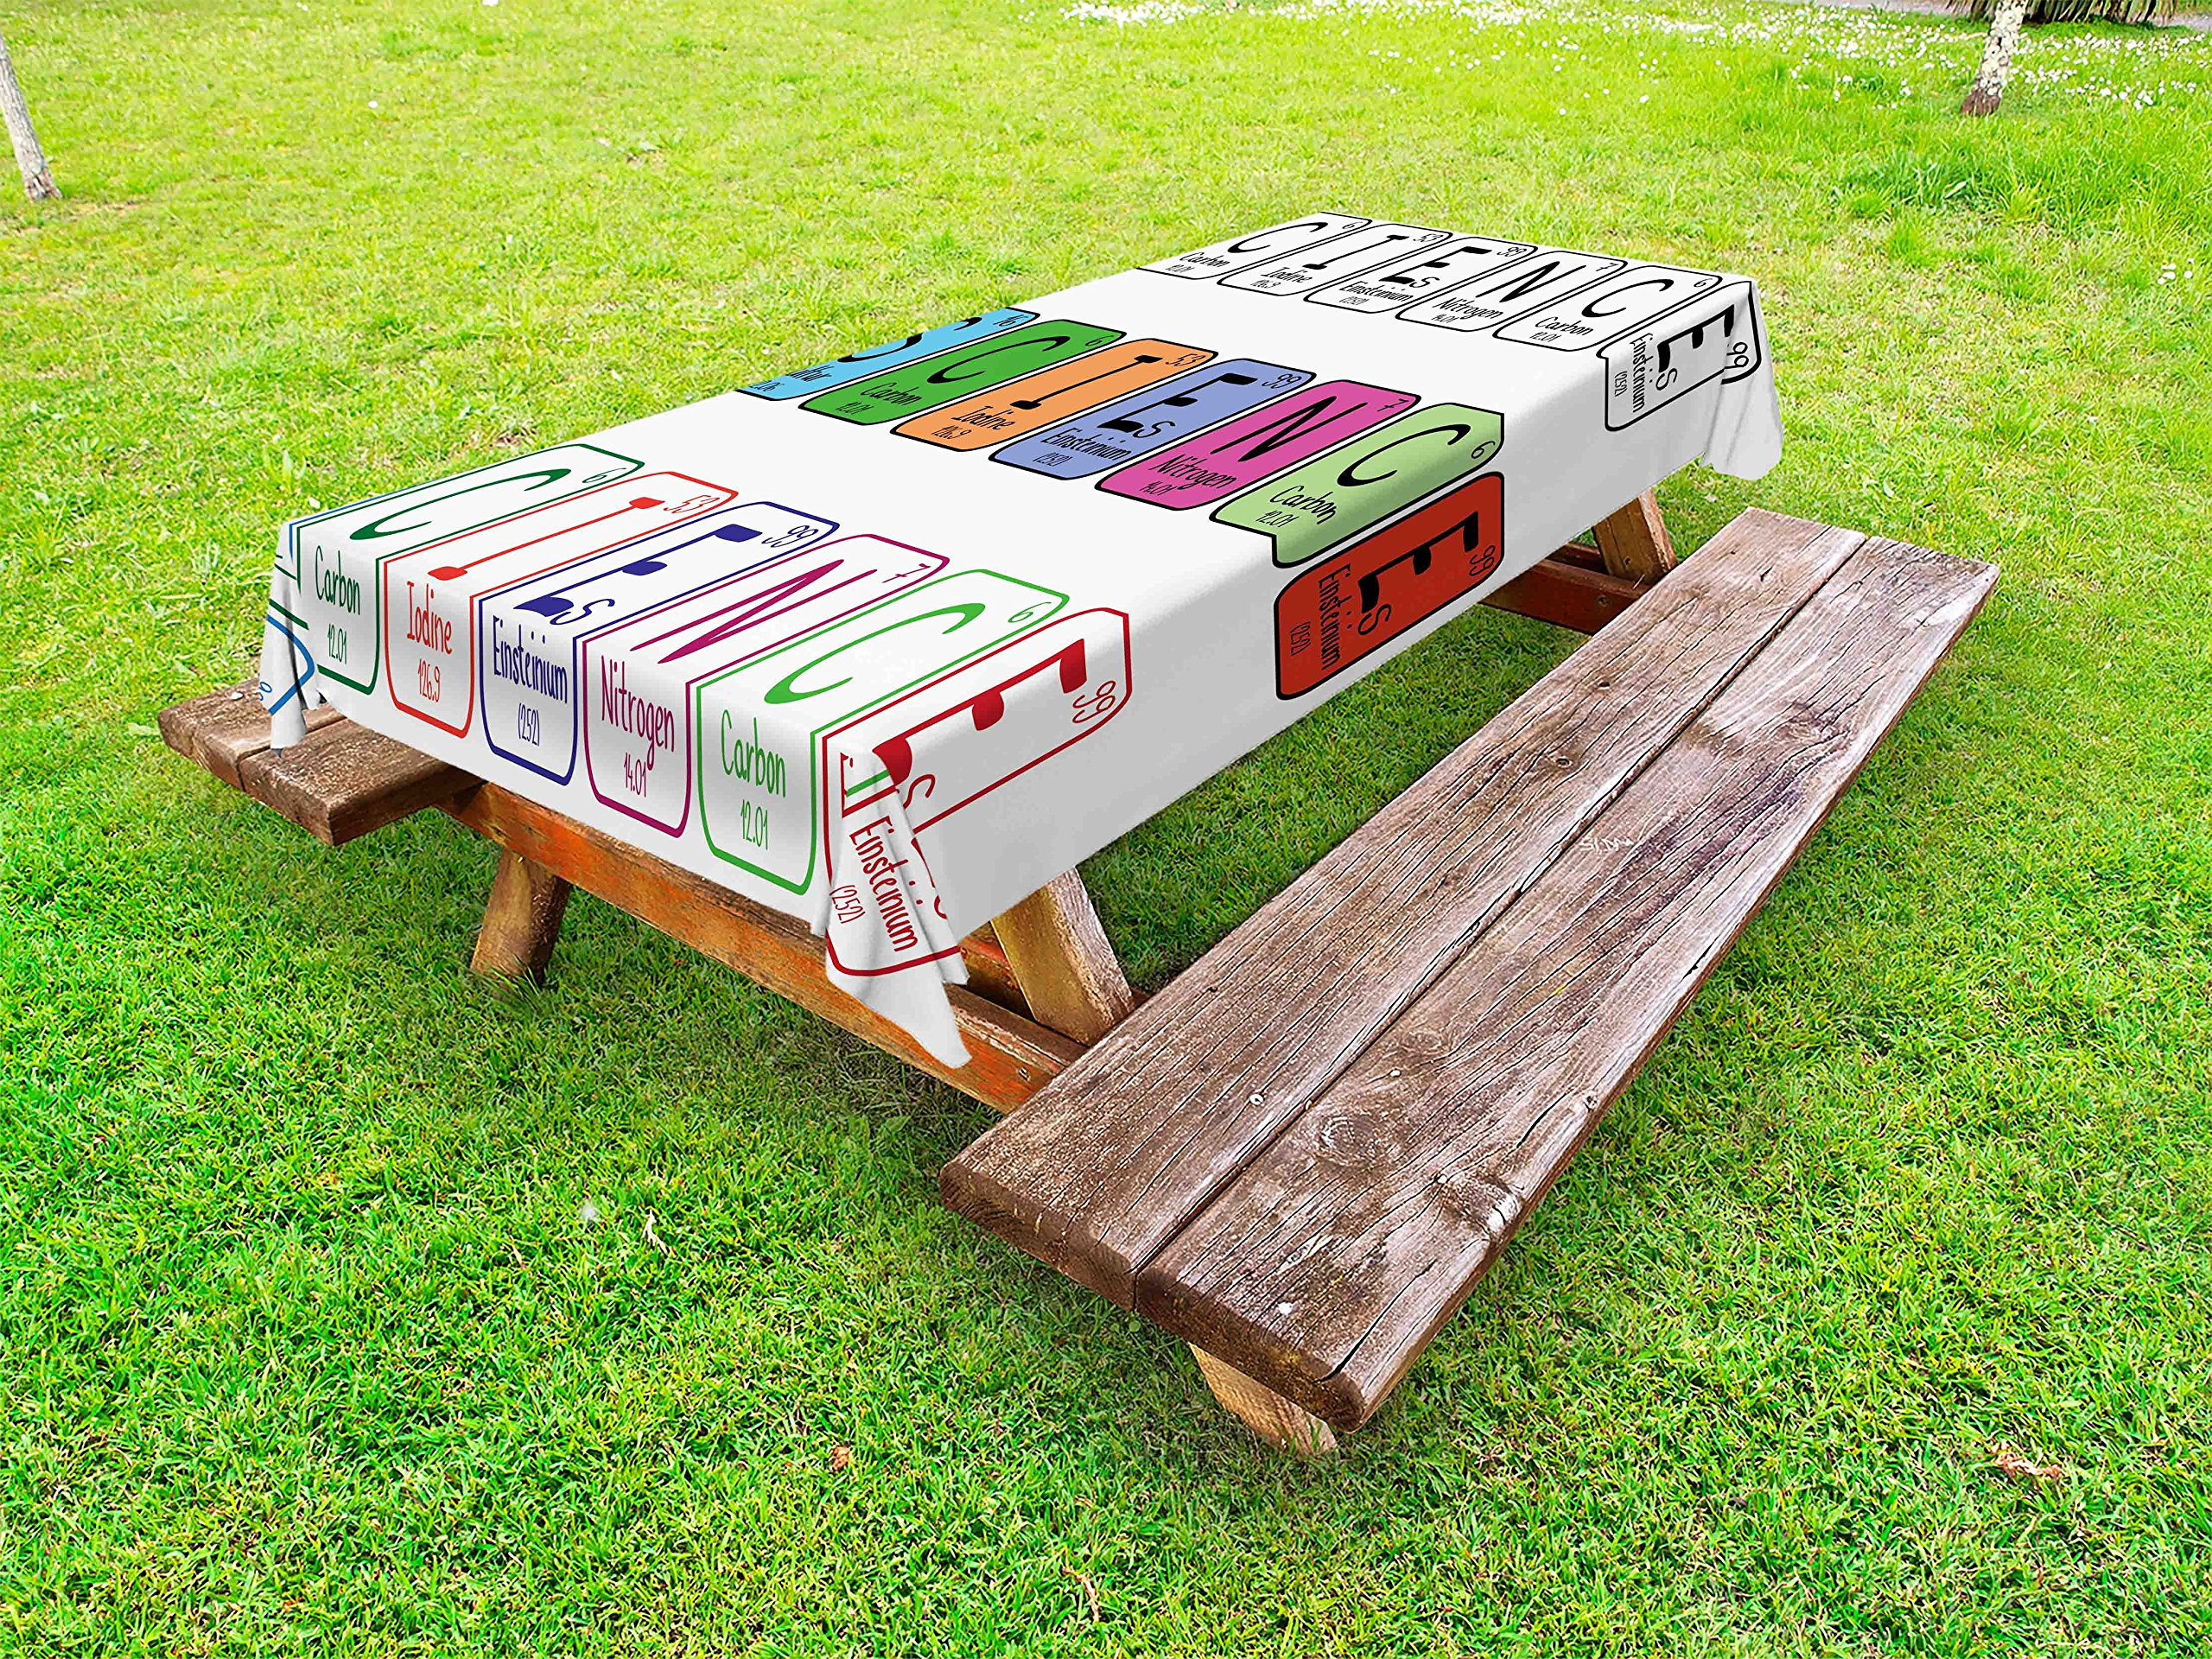 Ambesonne Periodic Table Outdoor Tablecloth, Science Letterings with Capital Elements School Students Chemistry Lovers, Decorative Washable Picnic Table Cloth, 58 X 104 inches, Multicolor